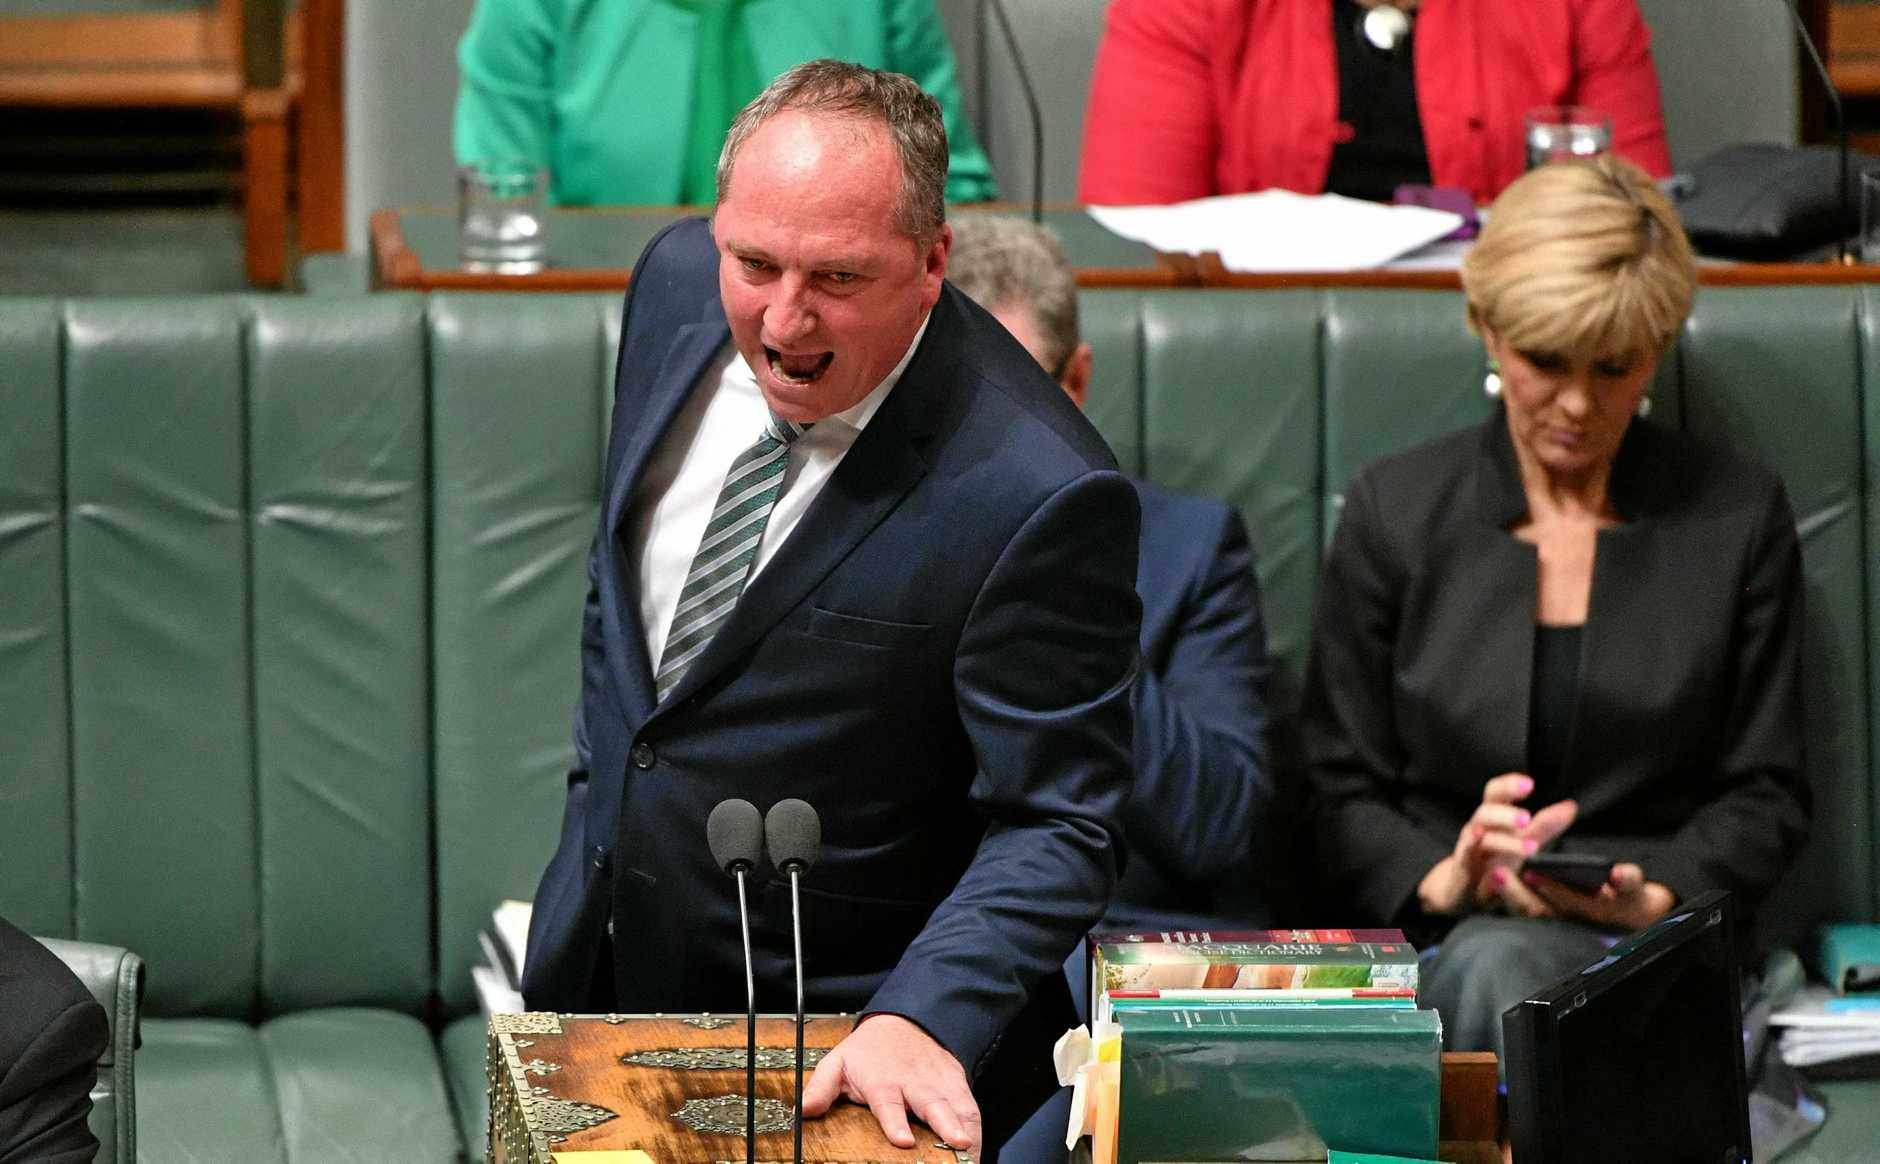 IT'S ON: Hinkler MP Keith Pitt, inset left, and Wide Bay MP Llew O'Brien, inset right, have spoken out about embattled Deputy Prime Minister Barnaby Joyce as a challenge looms for the Nationals leadership.